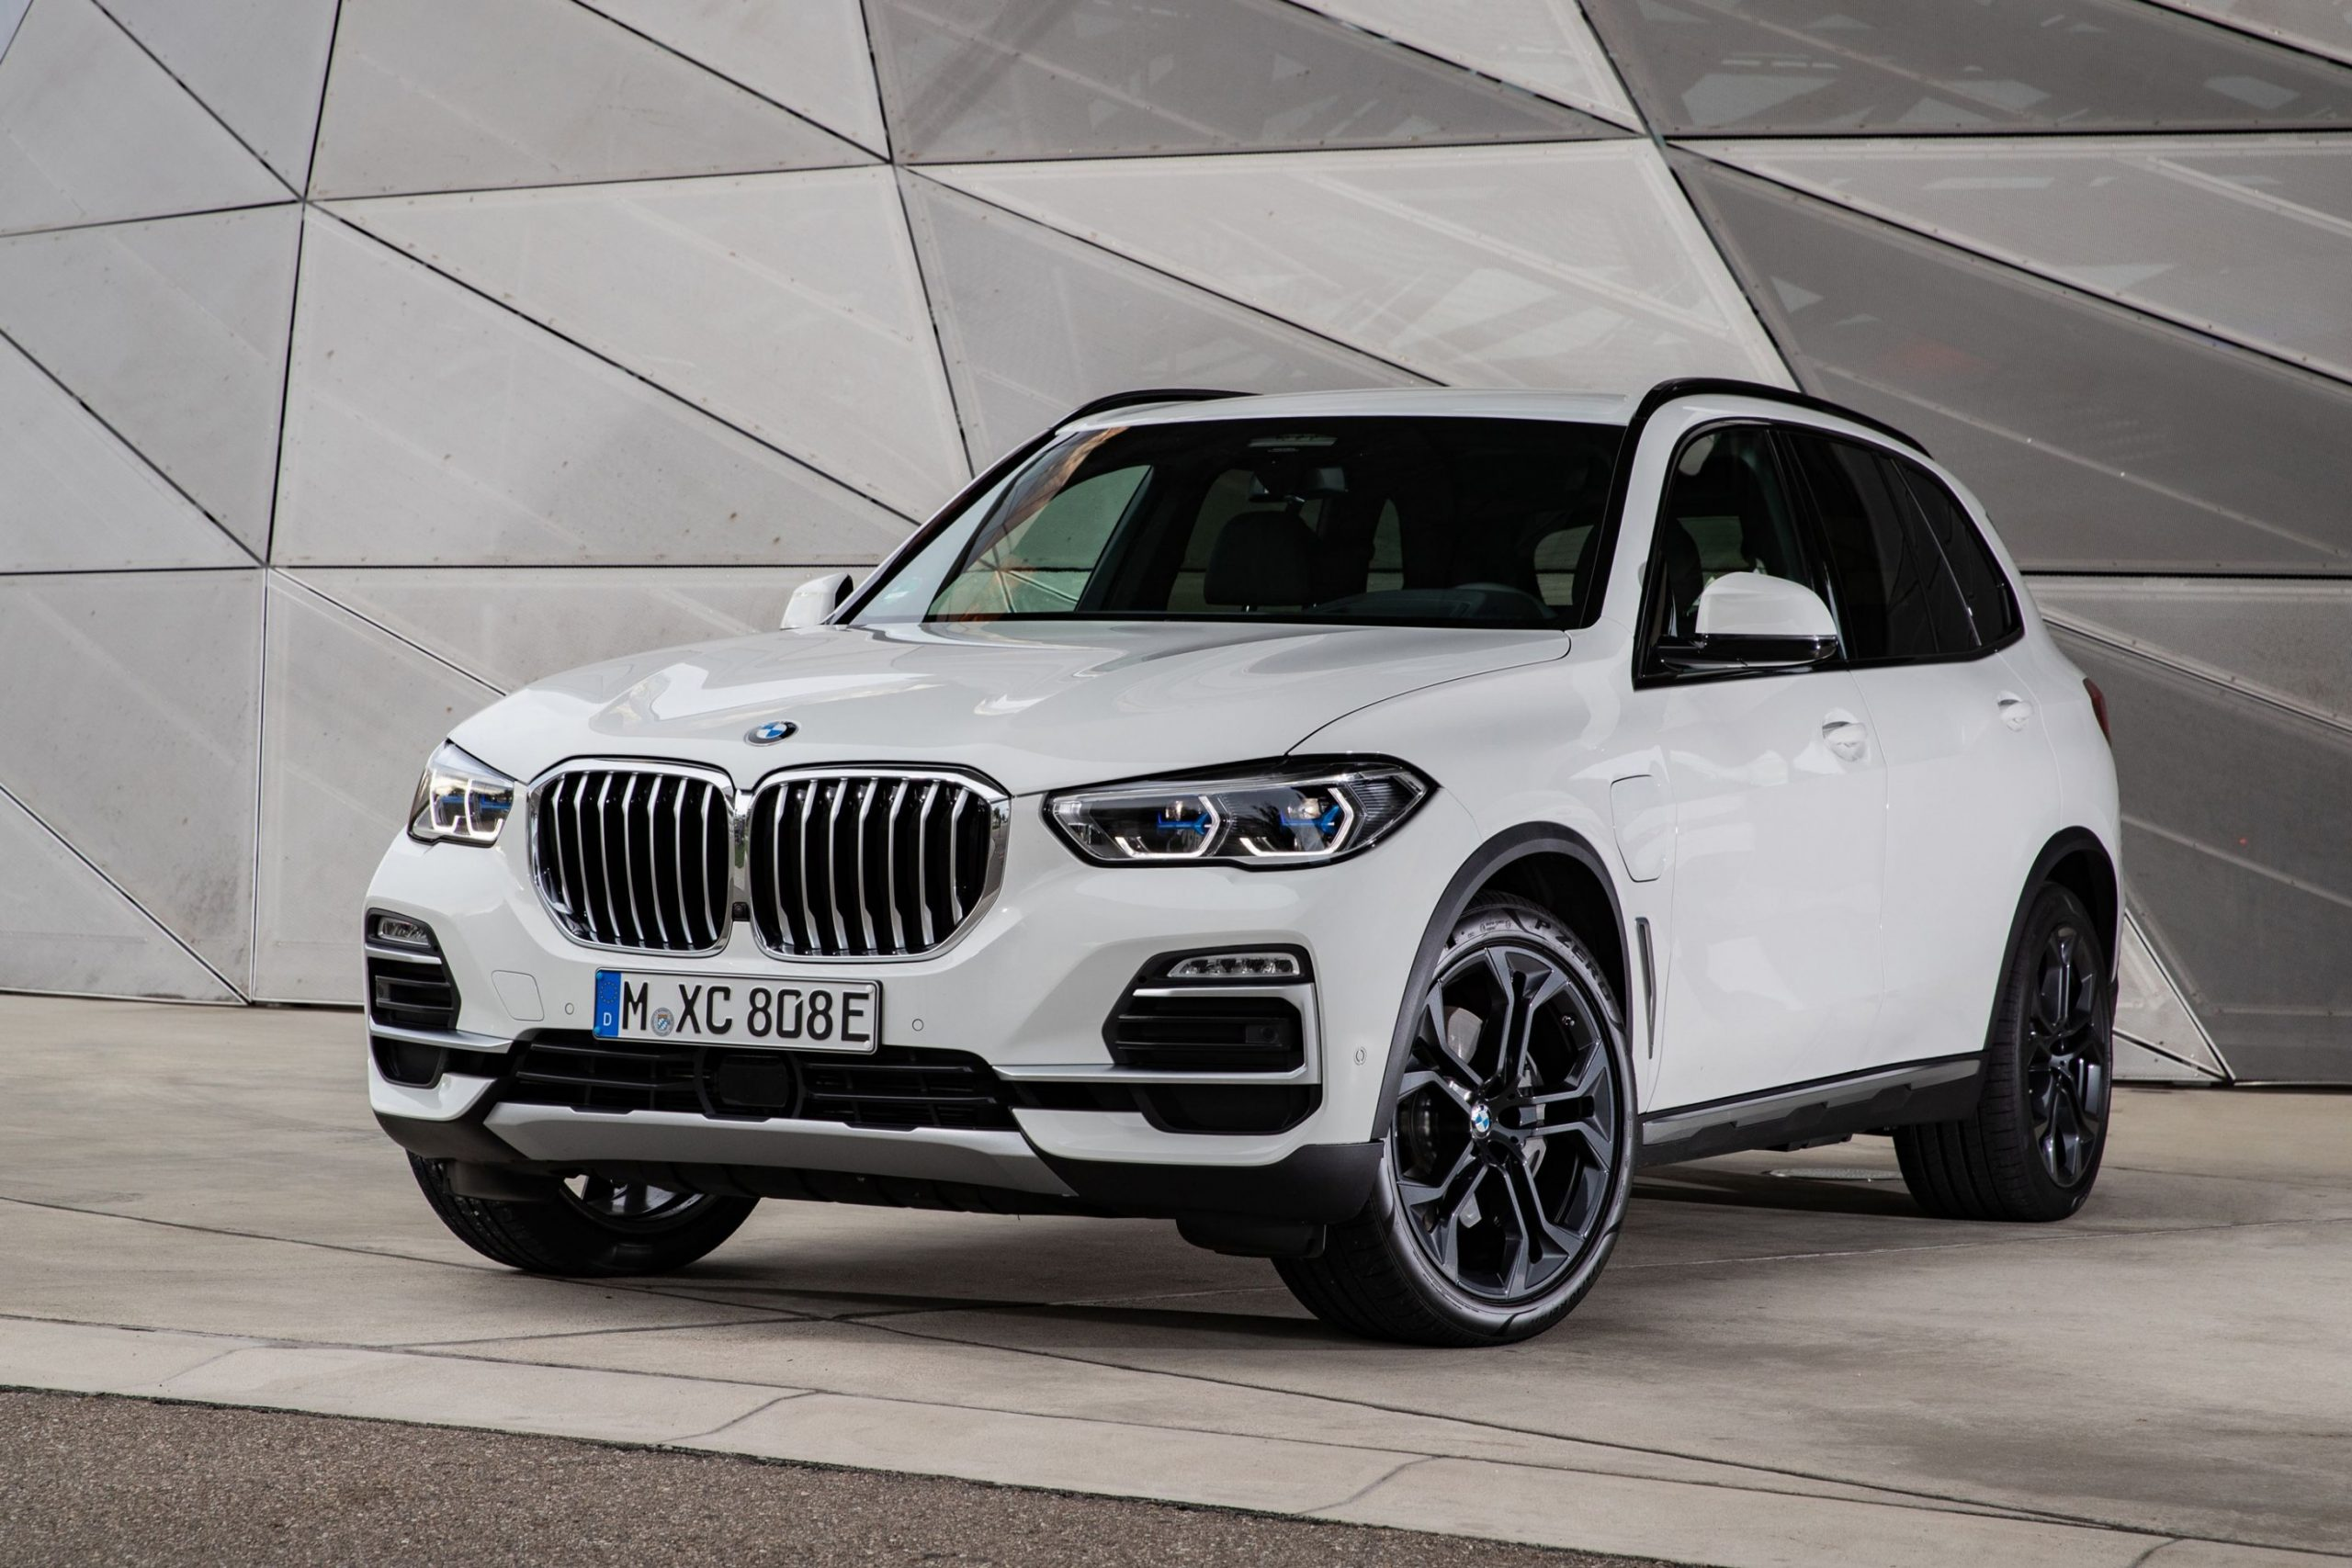 5 BMW X5 Review, Pricing, and Specs - BMW Truck 2021